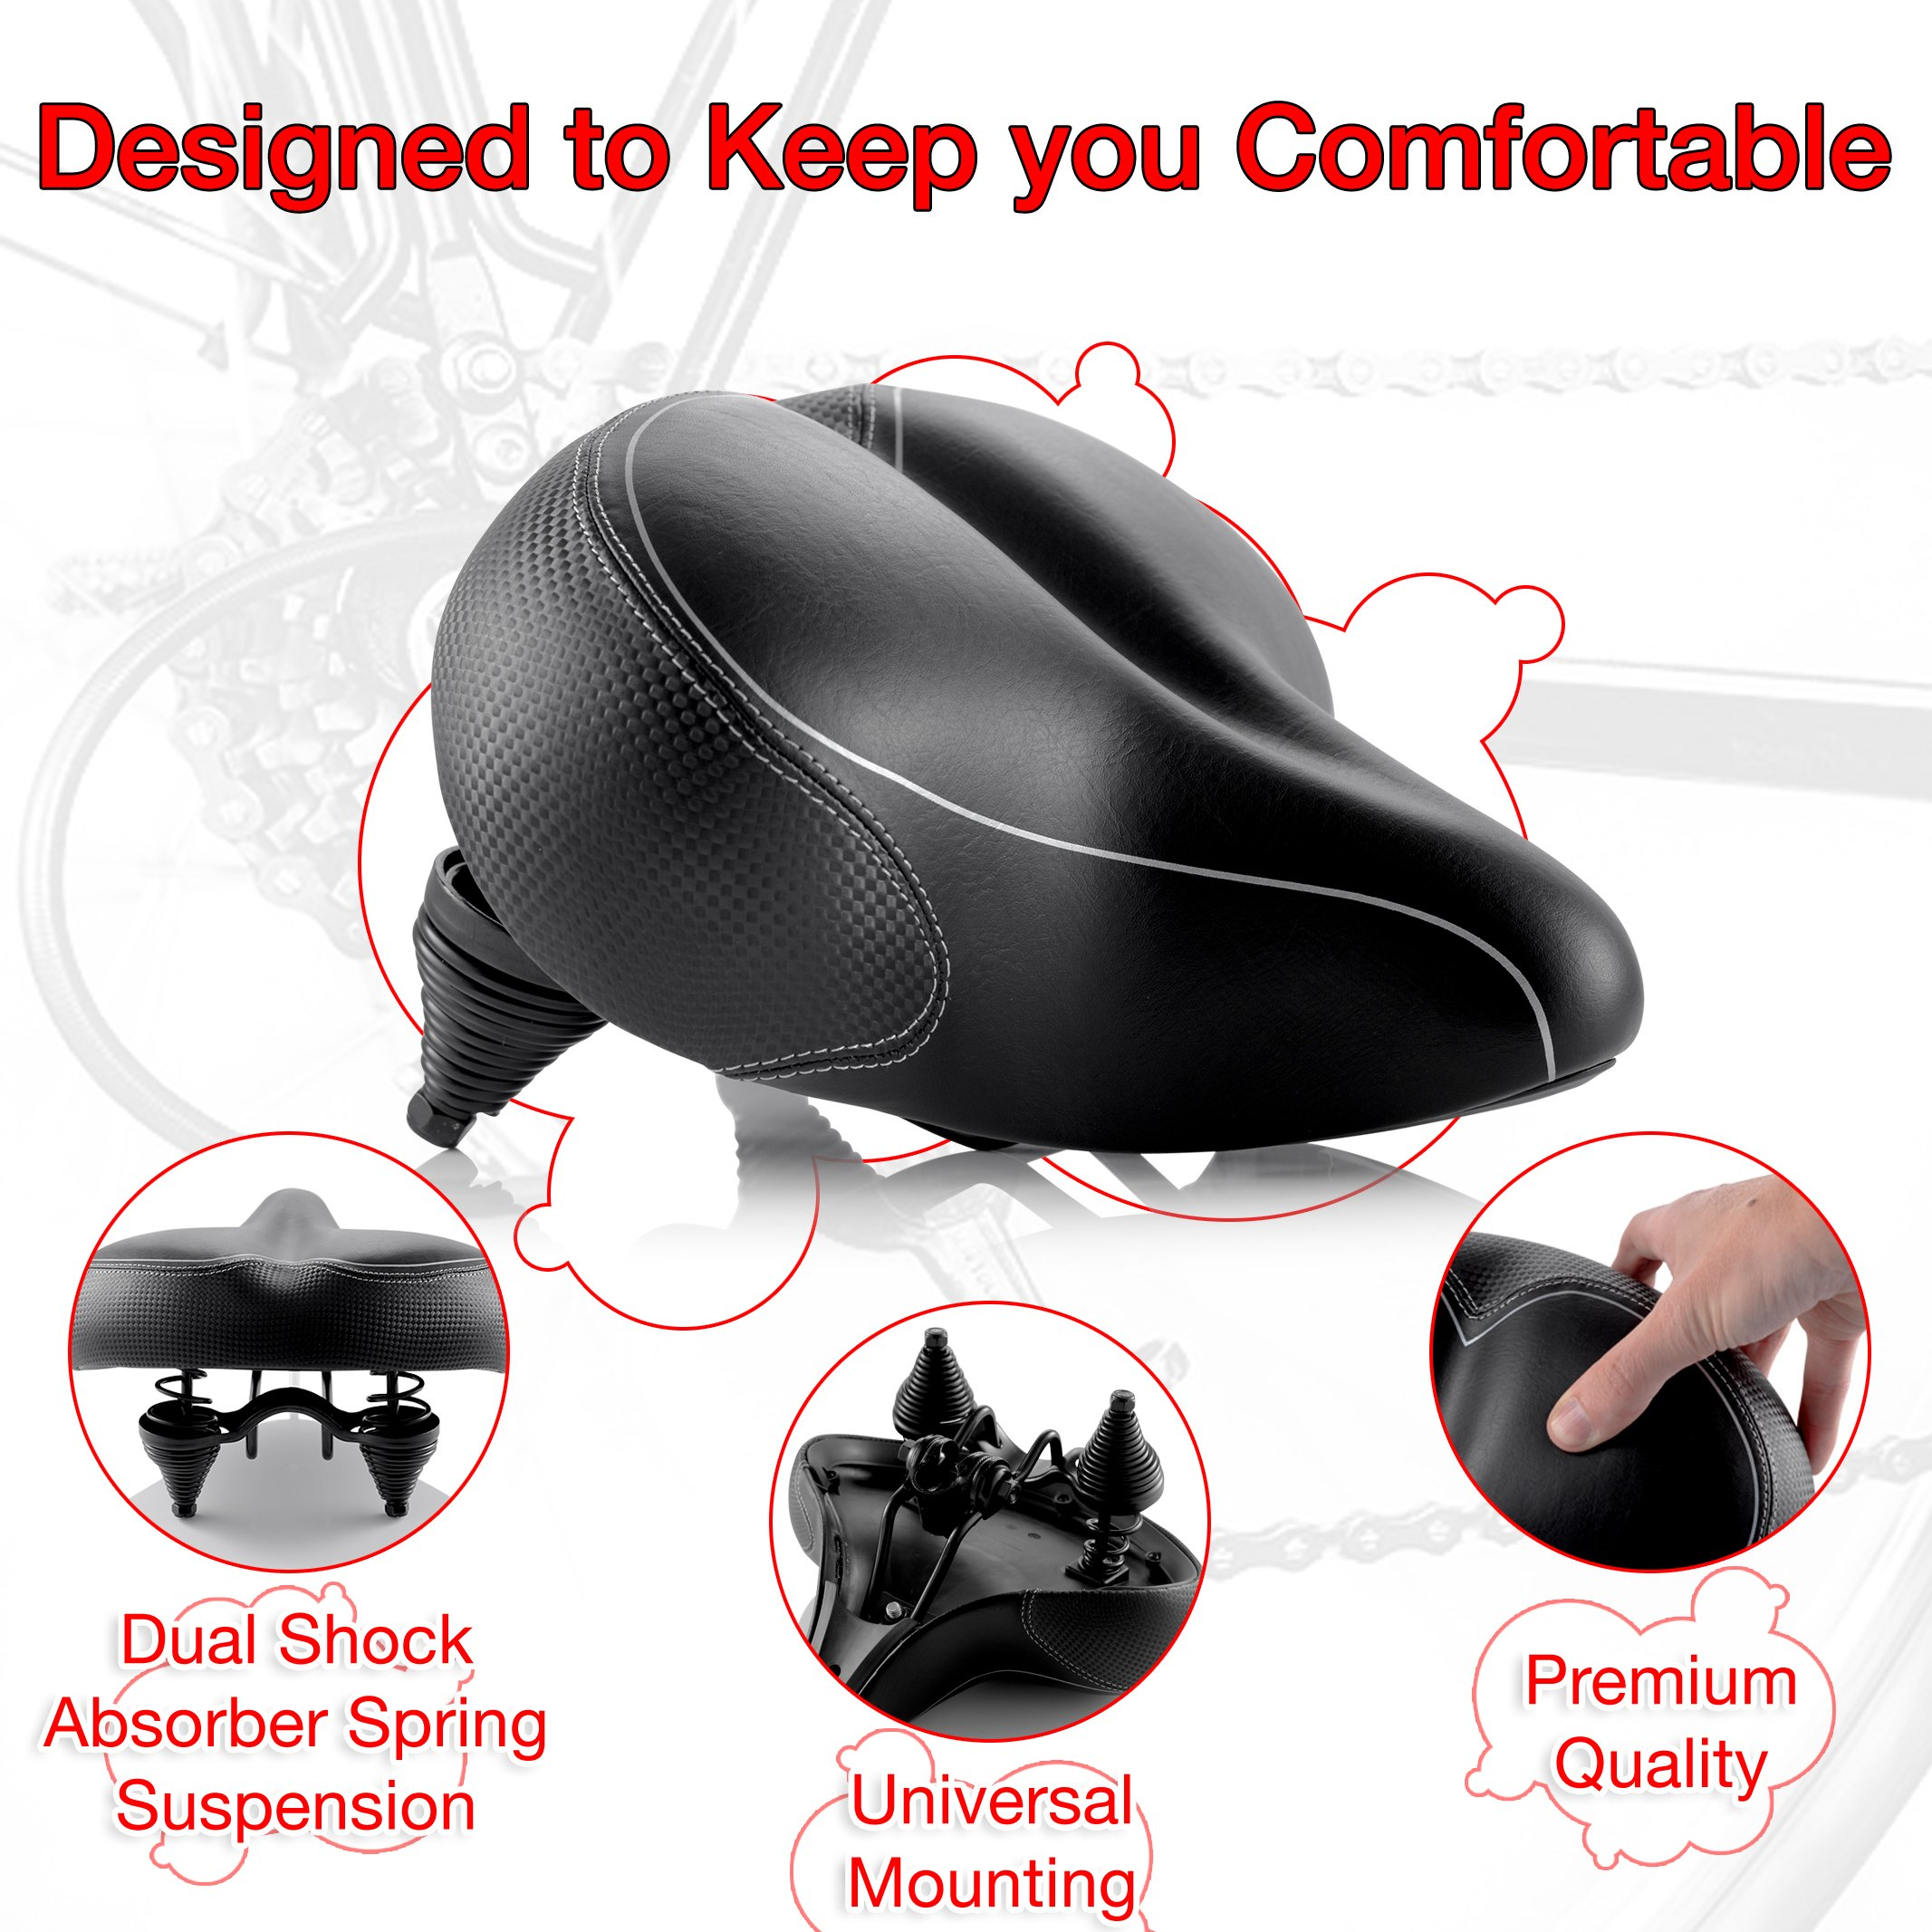 Oversized Comfort Bike Seat Most Comfortable Replacement Bicycle Saddle for Cycling | Universal Fit for Outdoor Exercise Bikes & Indoor Spin Bikes | Wide Soft Padded Bike Saddle For Women and Men by Asani (Image #2)